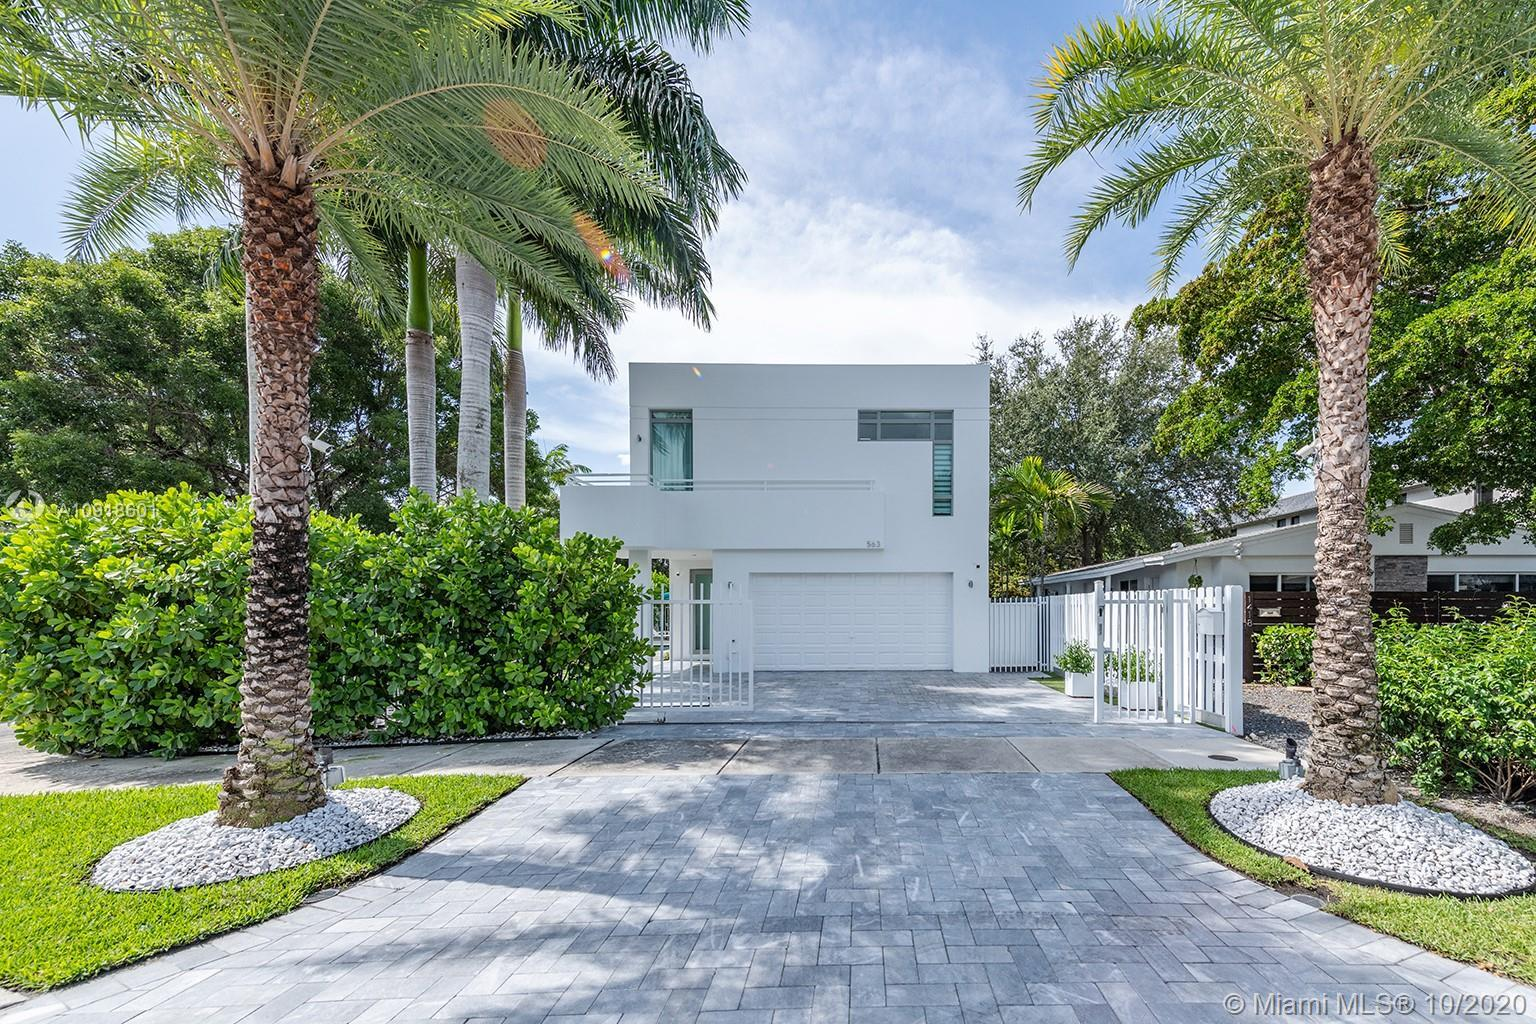 IMPECCABLE, ELEGANT, PRIVATE MODERN OASIS in the heart of hot VICTORIA PARK. Soaring 20' ceilings, 3